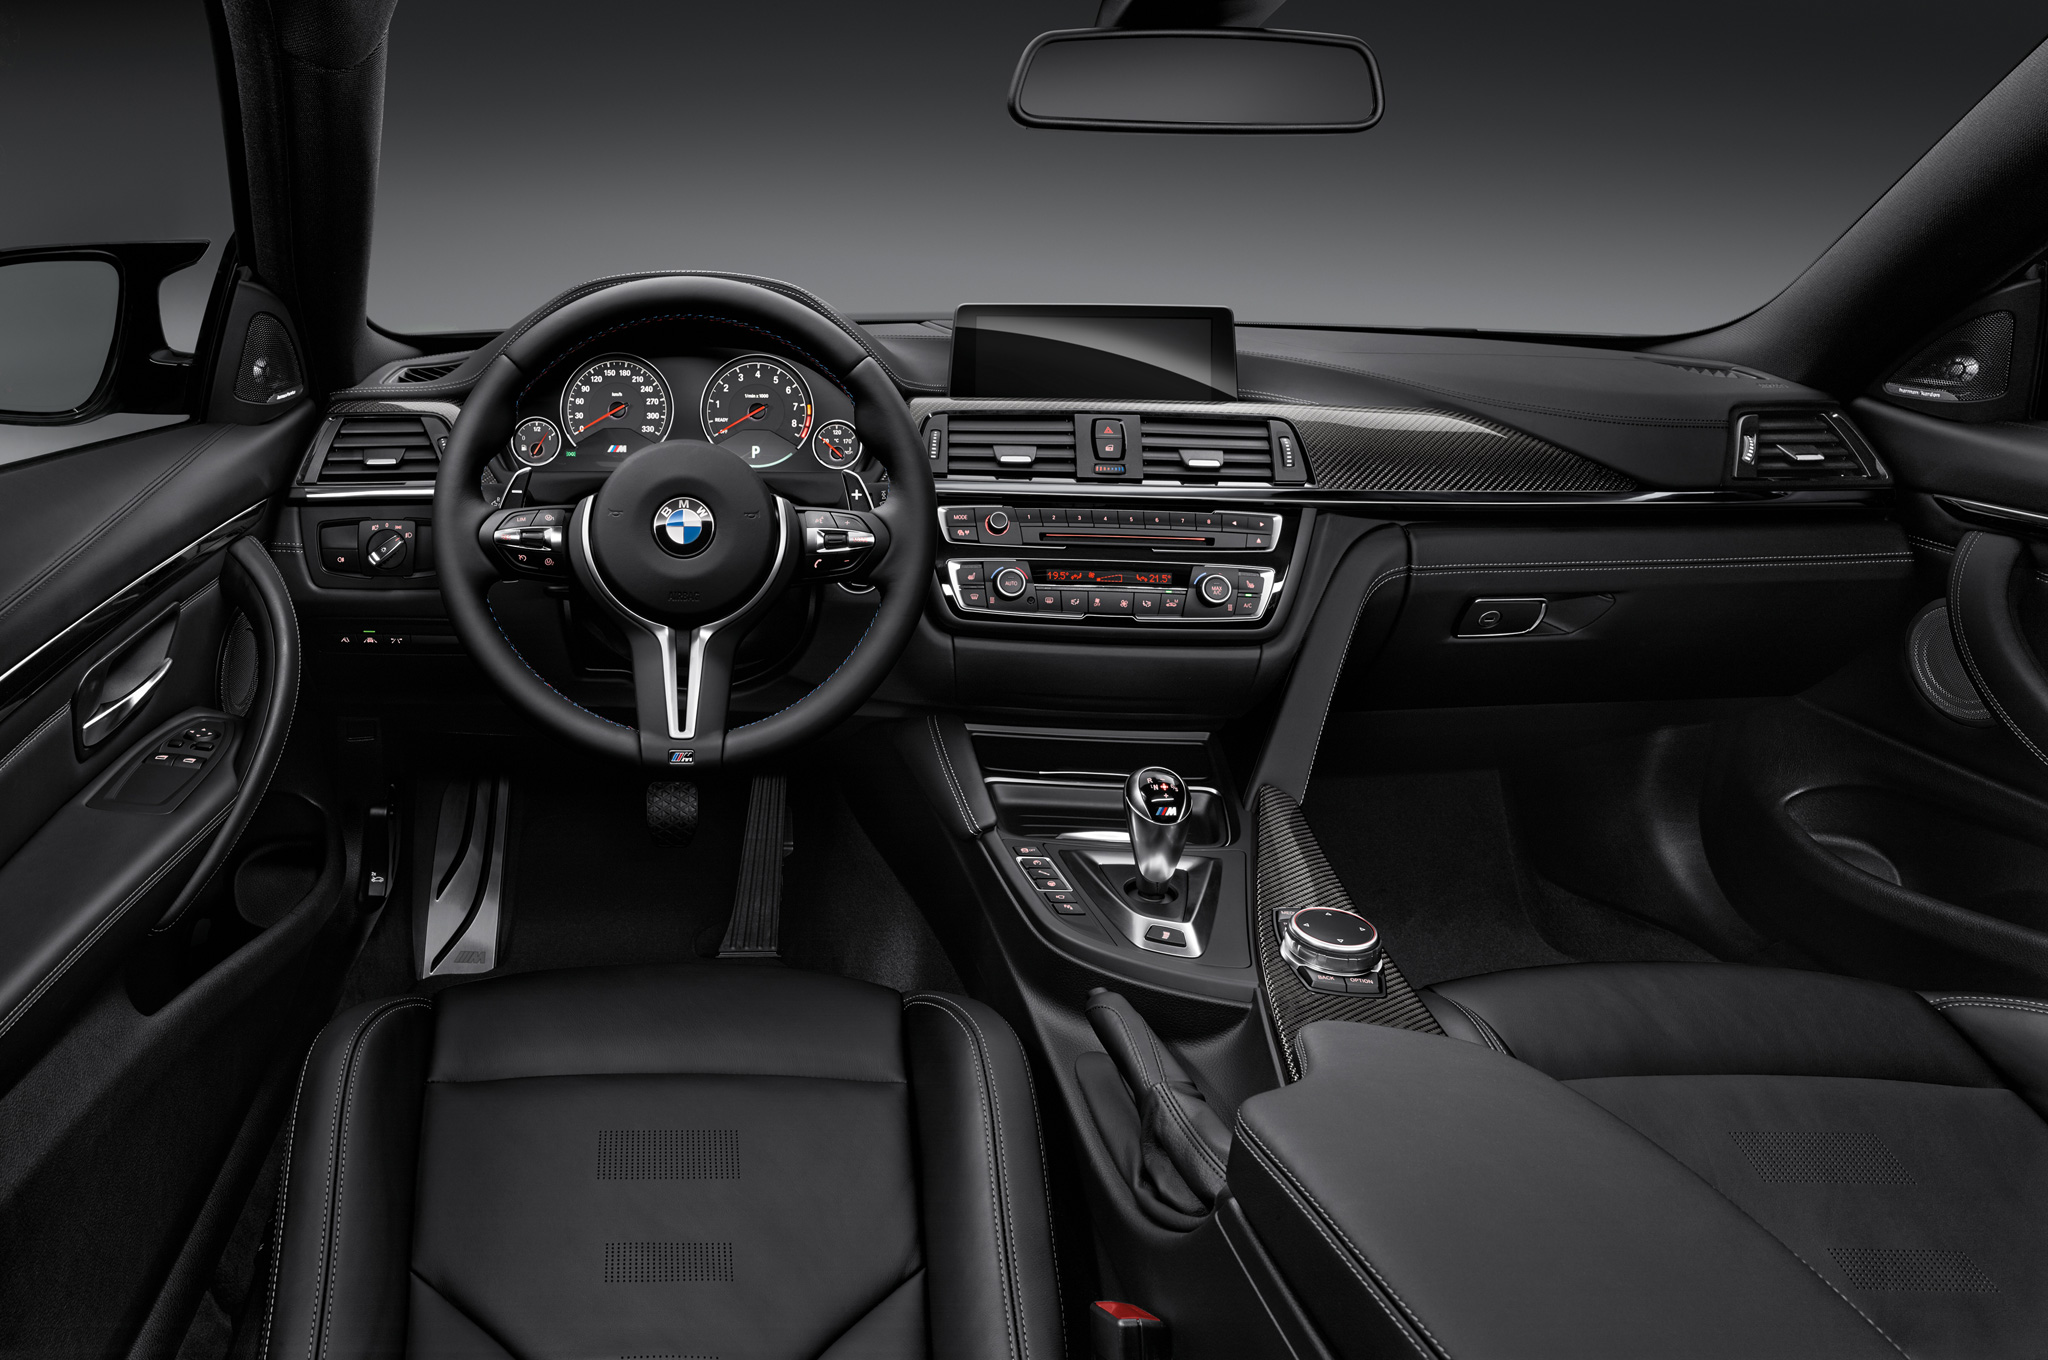 2015 Bmw M4 Interior Dashboard And Cockpit (Photo 32 of 41)